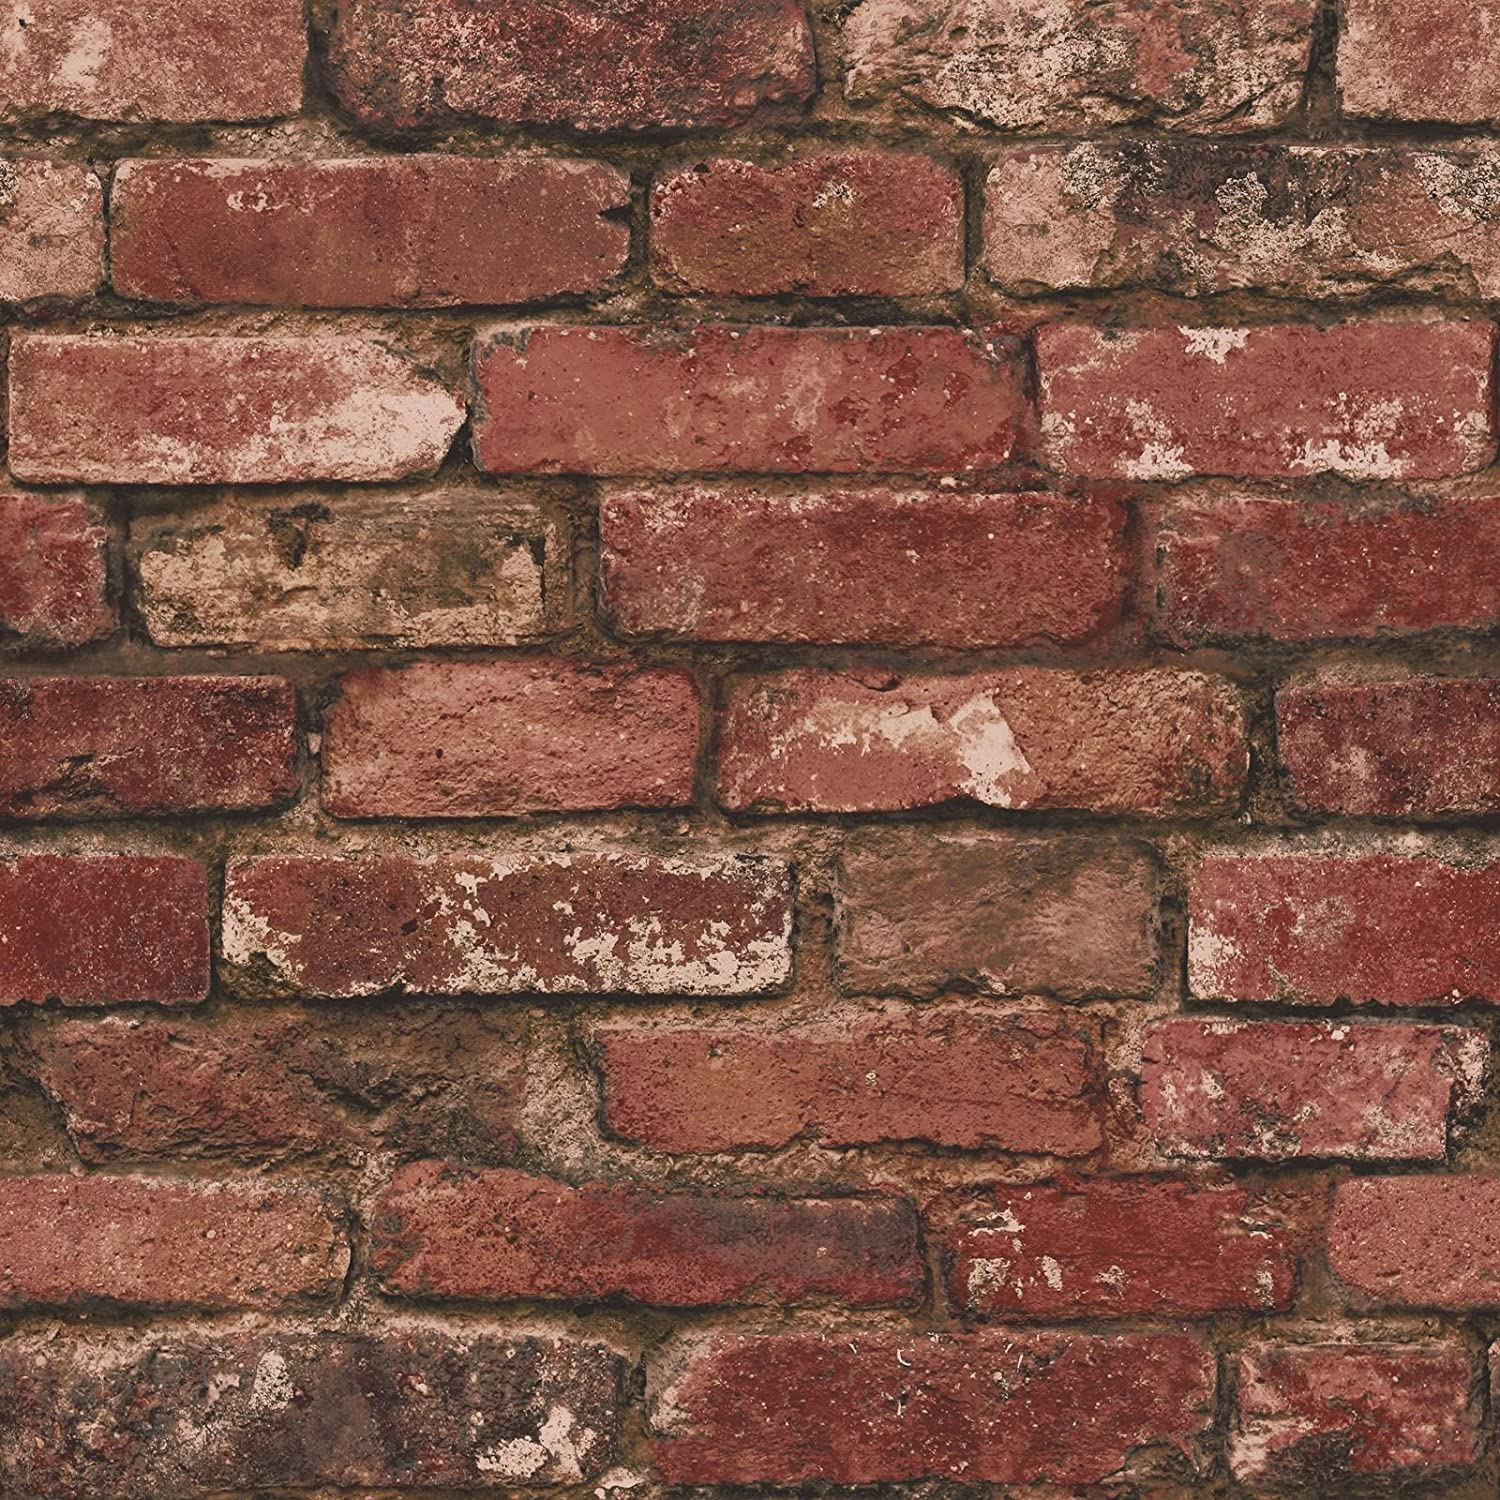 Textured Brick Wallpaper Uk Part - 30: Brewster FD31285 Rustic Brick Wallpaper, Red: Amazon.co.uk: DIY U0026 Tools